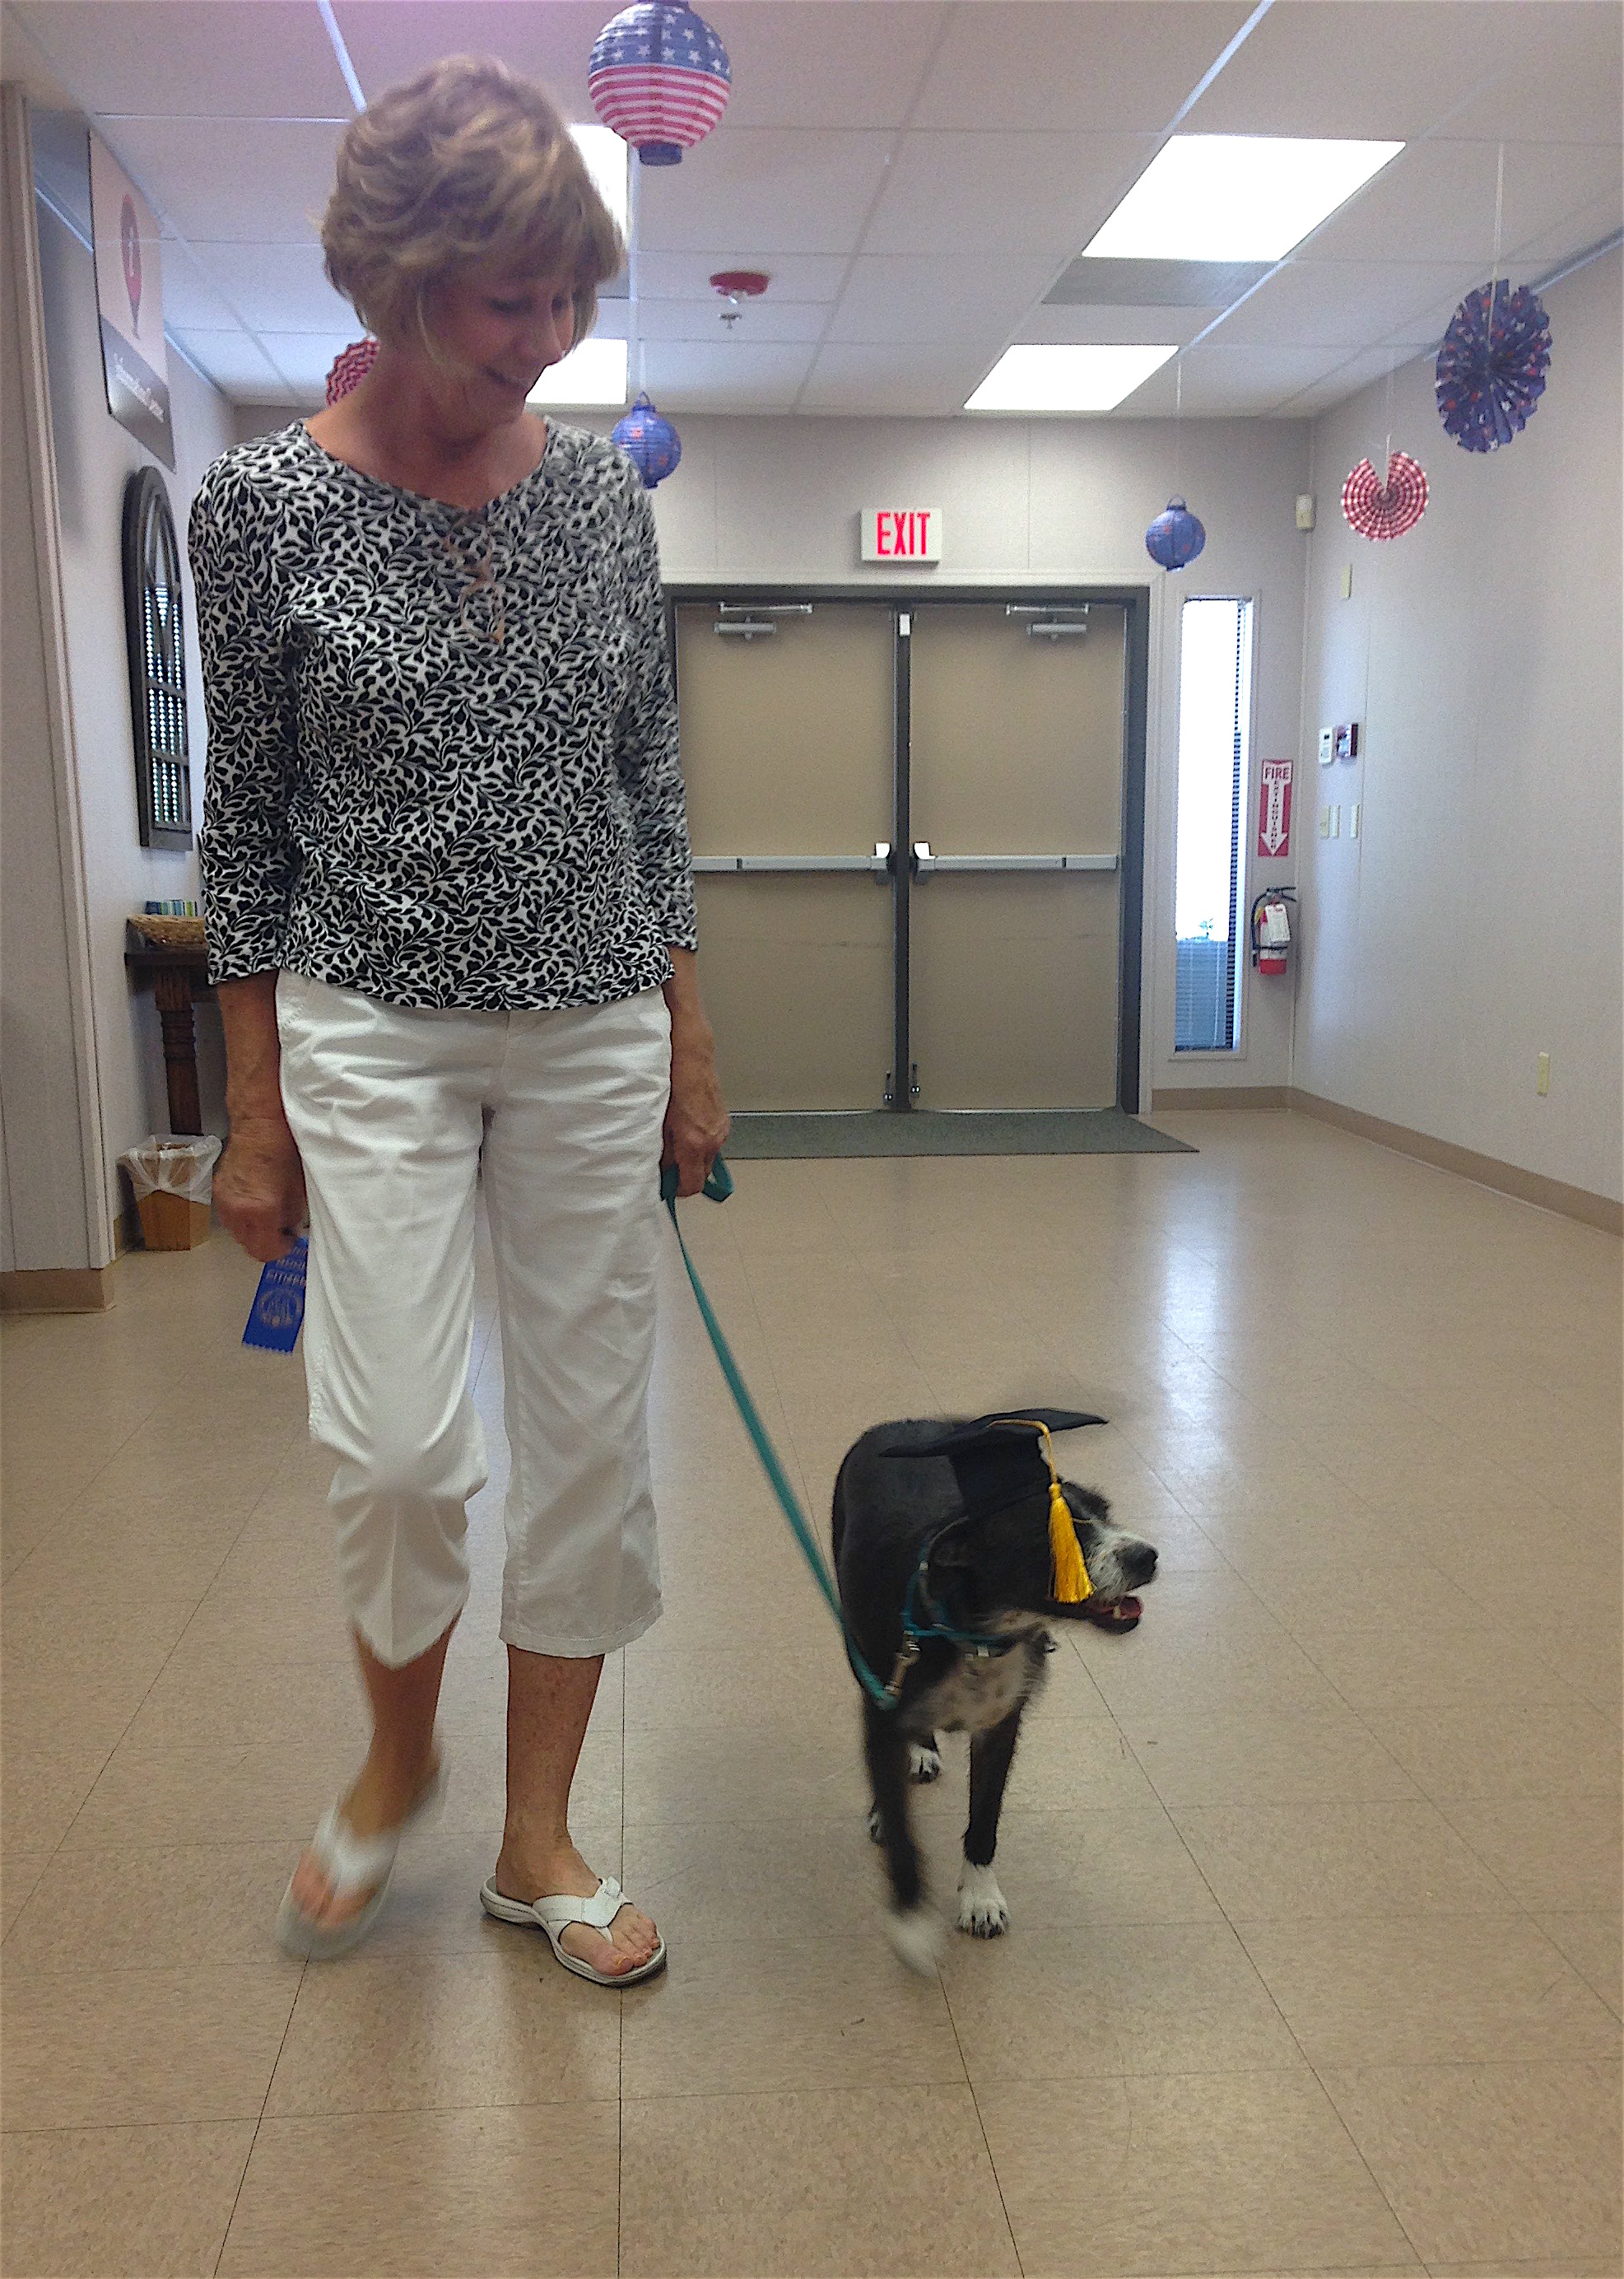 Fiona and her handler take a graduation walk around the room to celebrate her new title of Canine Good Citizen.